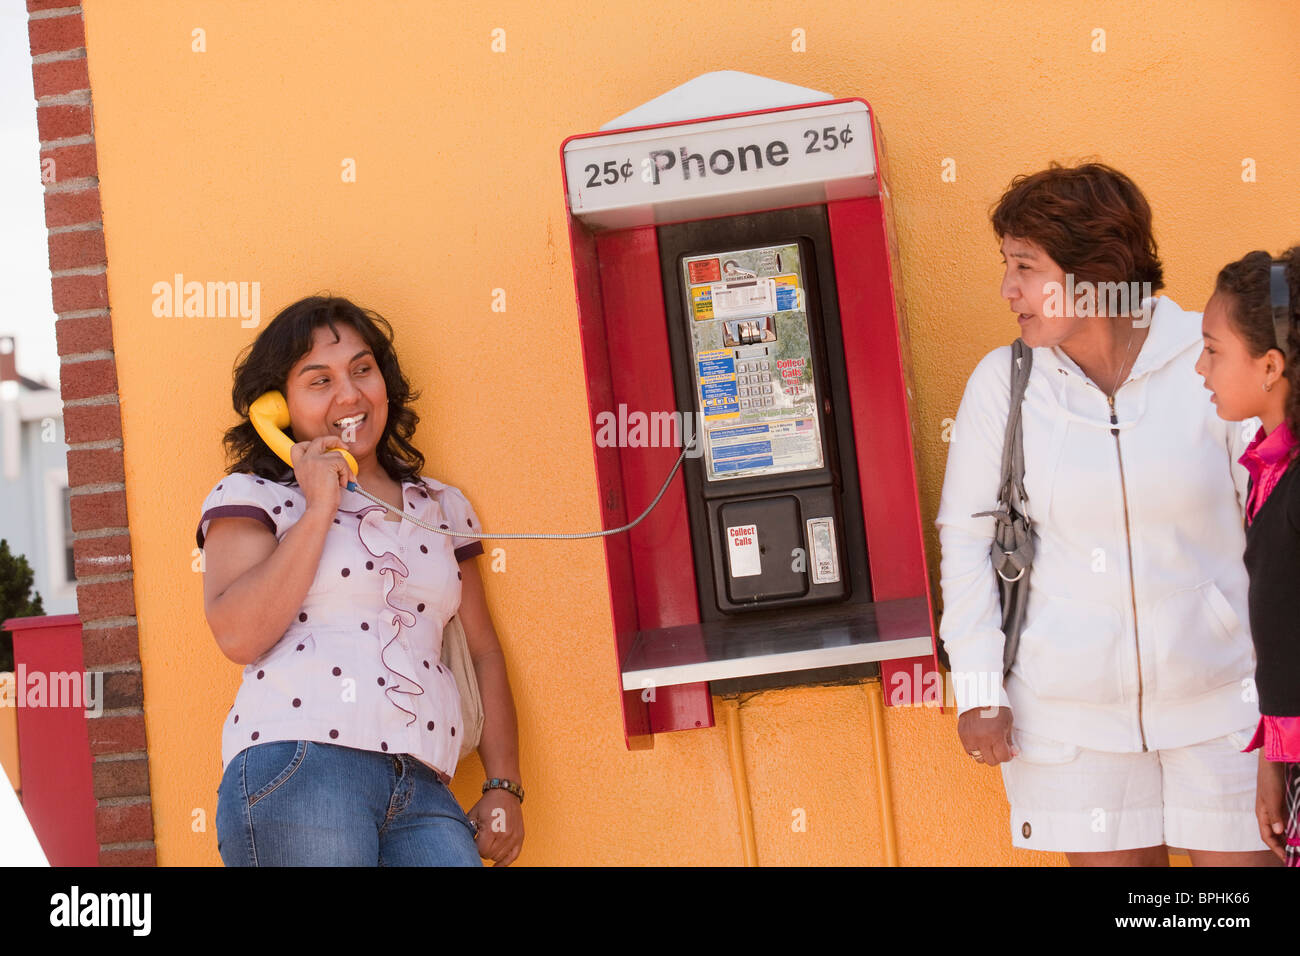 Hispanic woman talking on a pay phone with her family